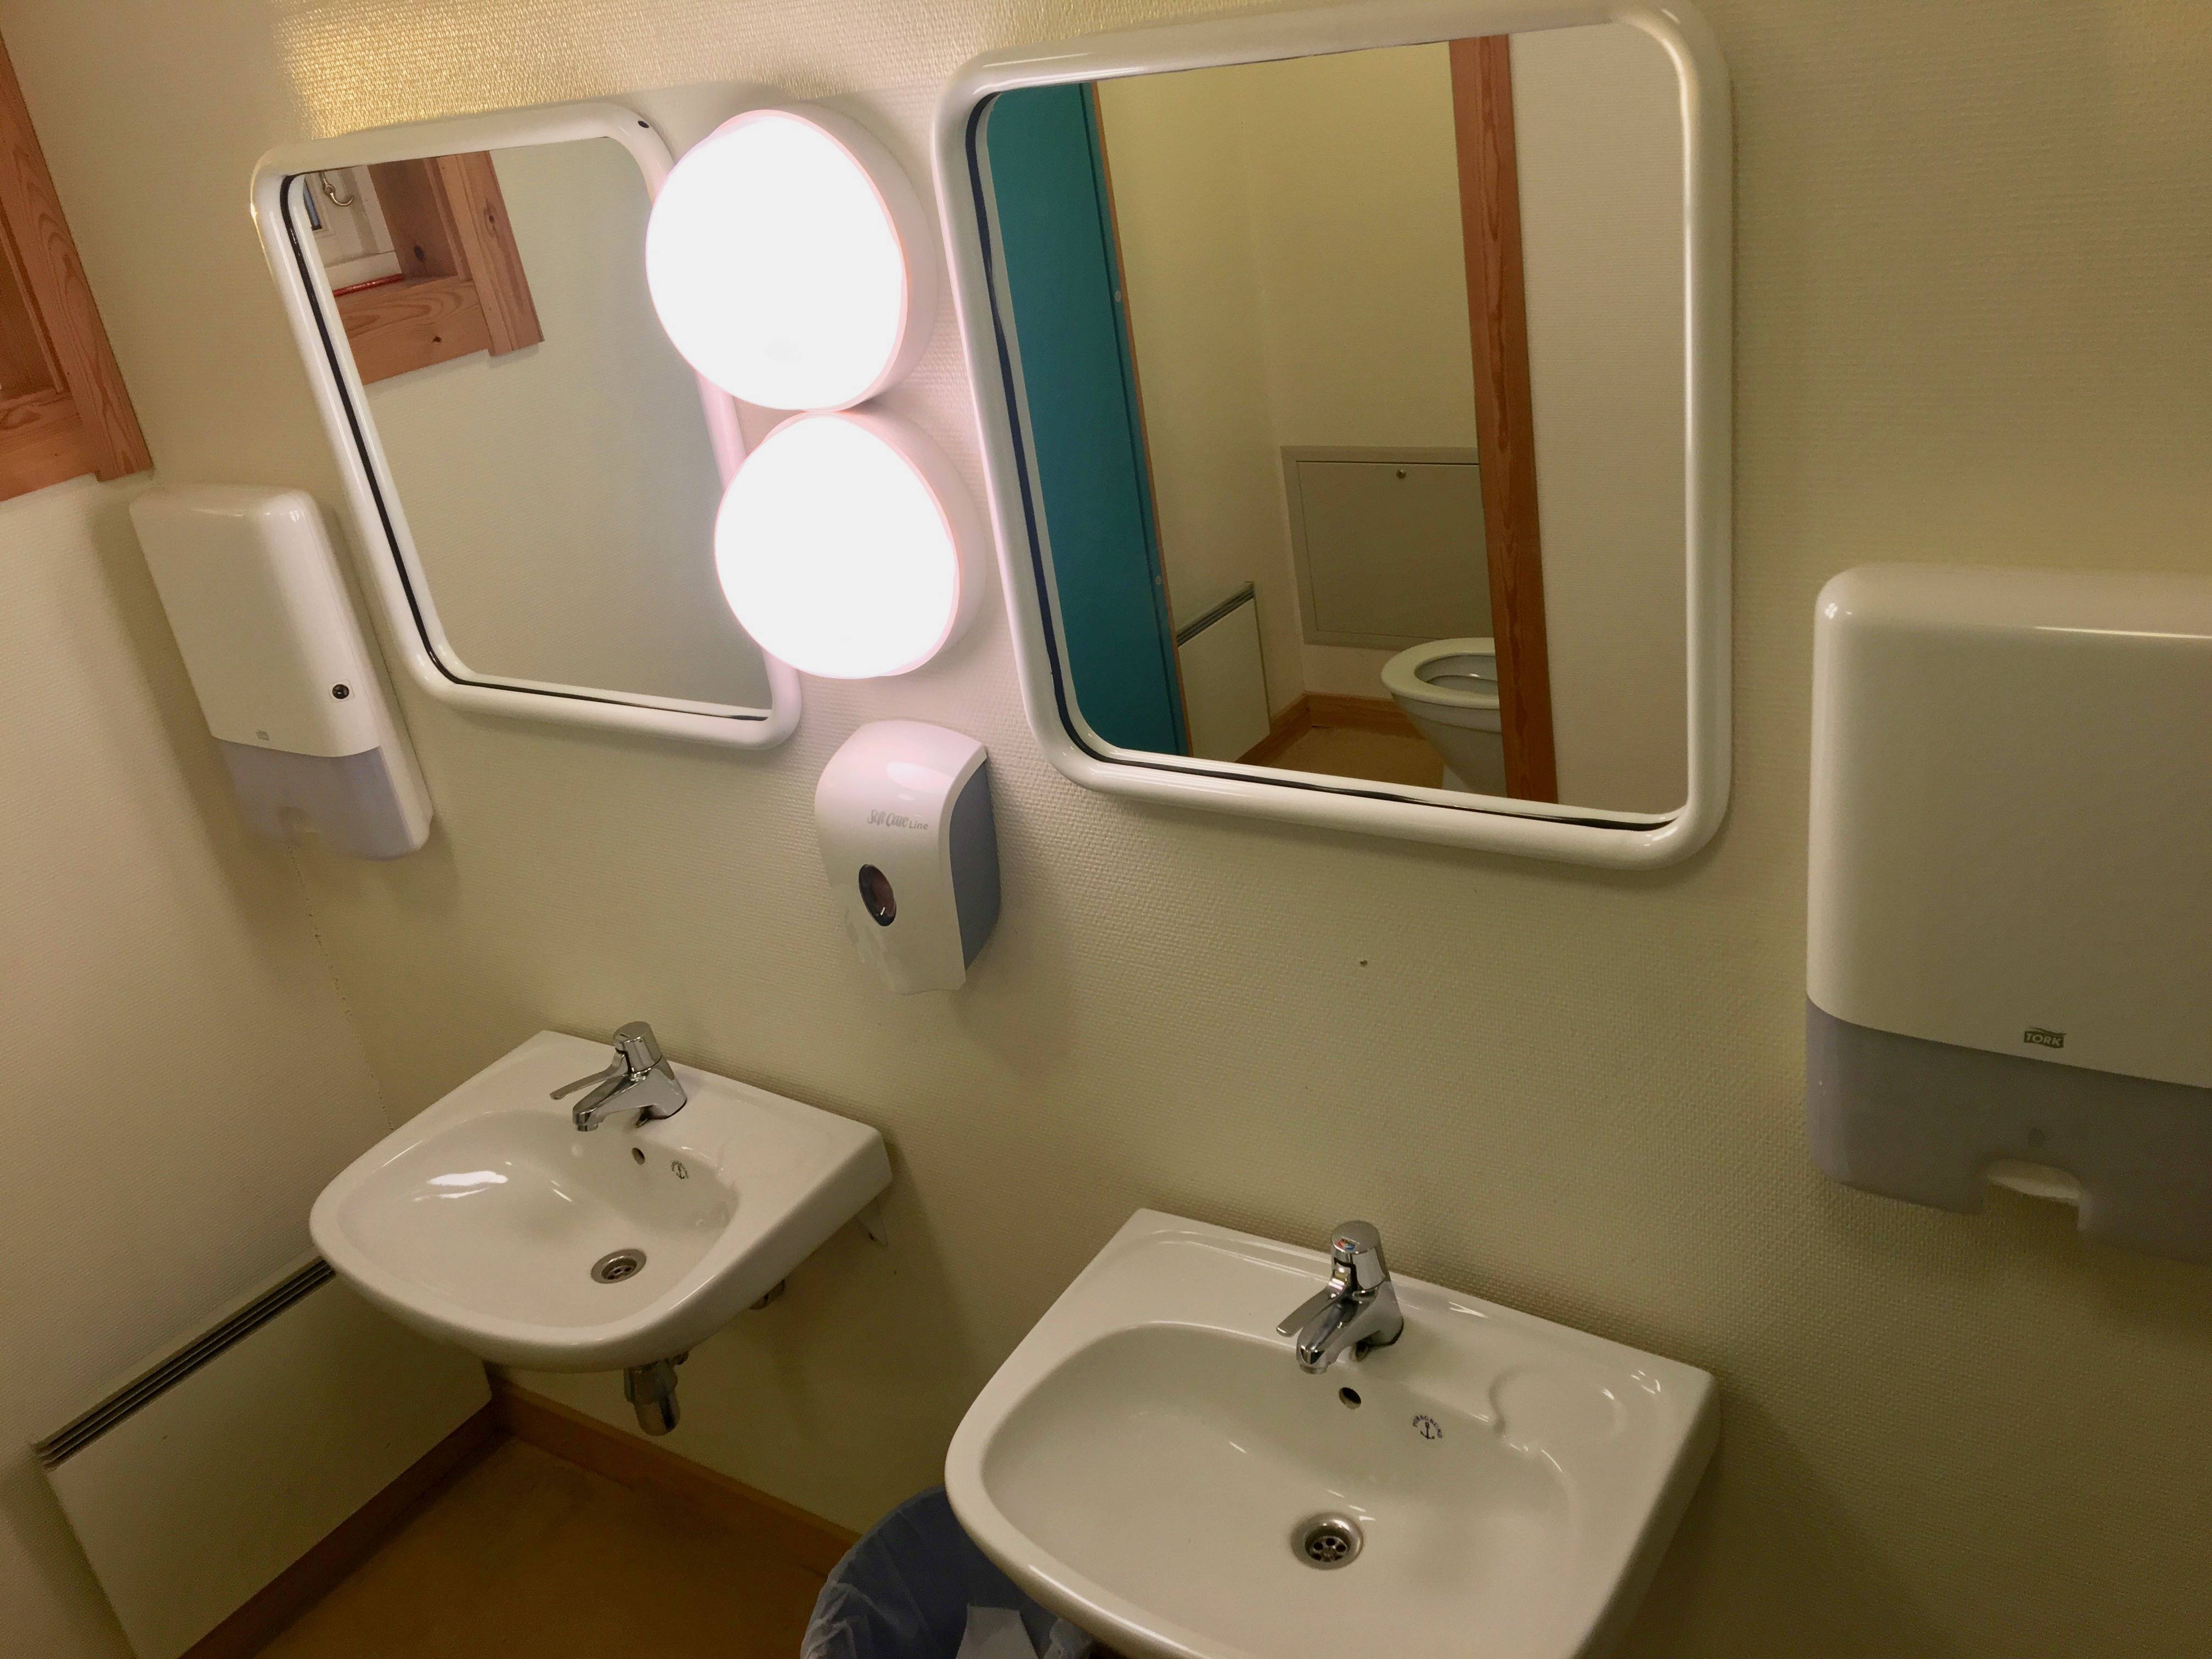 File:Toilet in primary school in Fusa, Hordaland, Norway 2018-03-21 ...